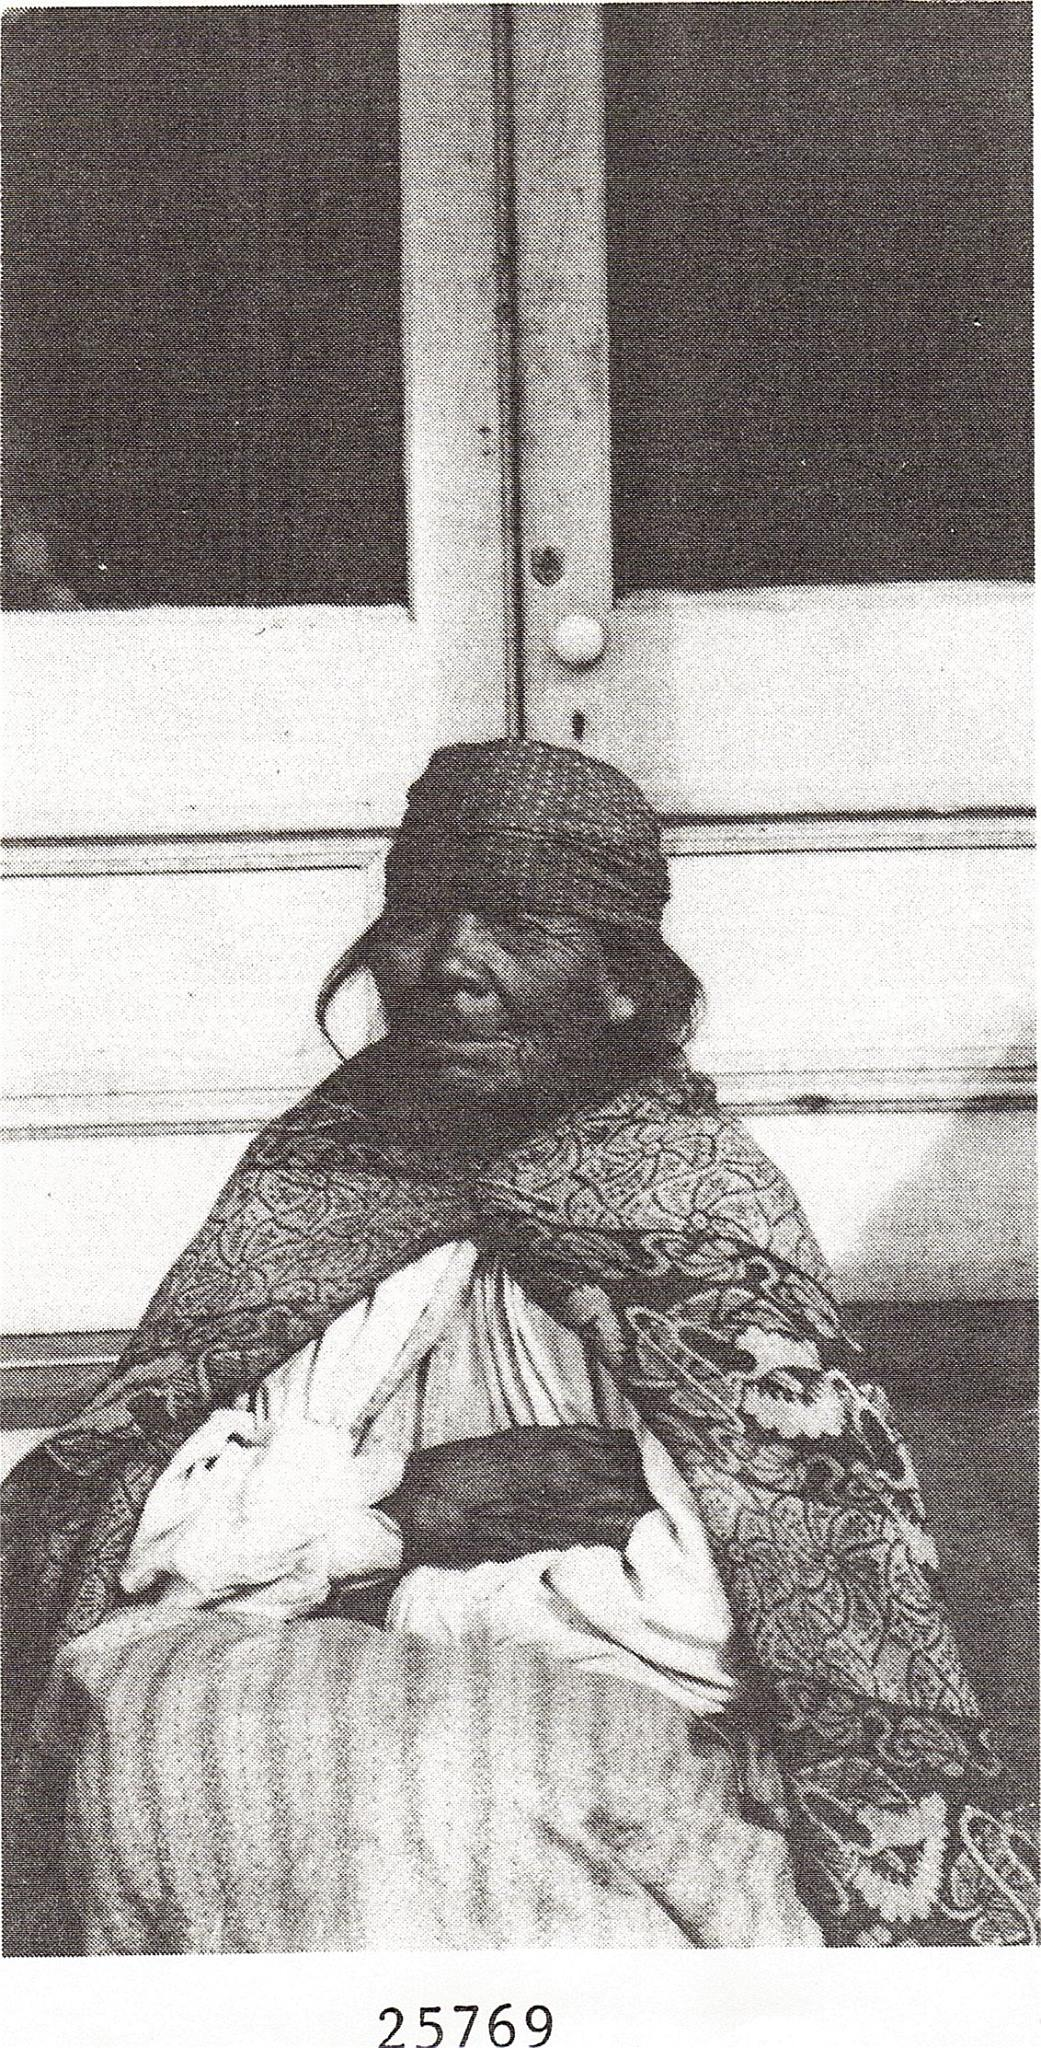 Mailhot's great-great-grandmother Jane Phillips, who passed ceremony teachings down to her children.